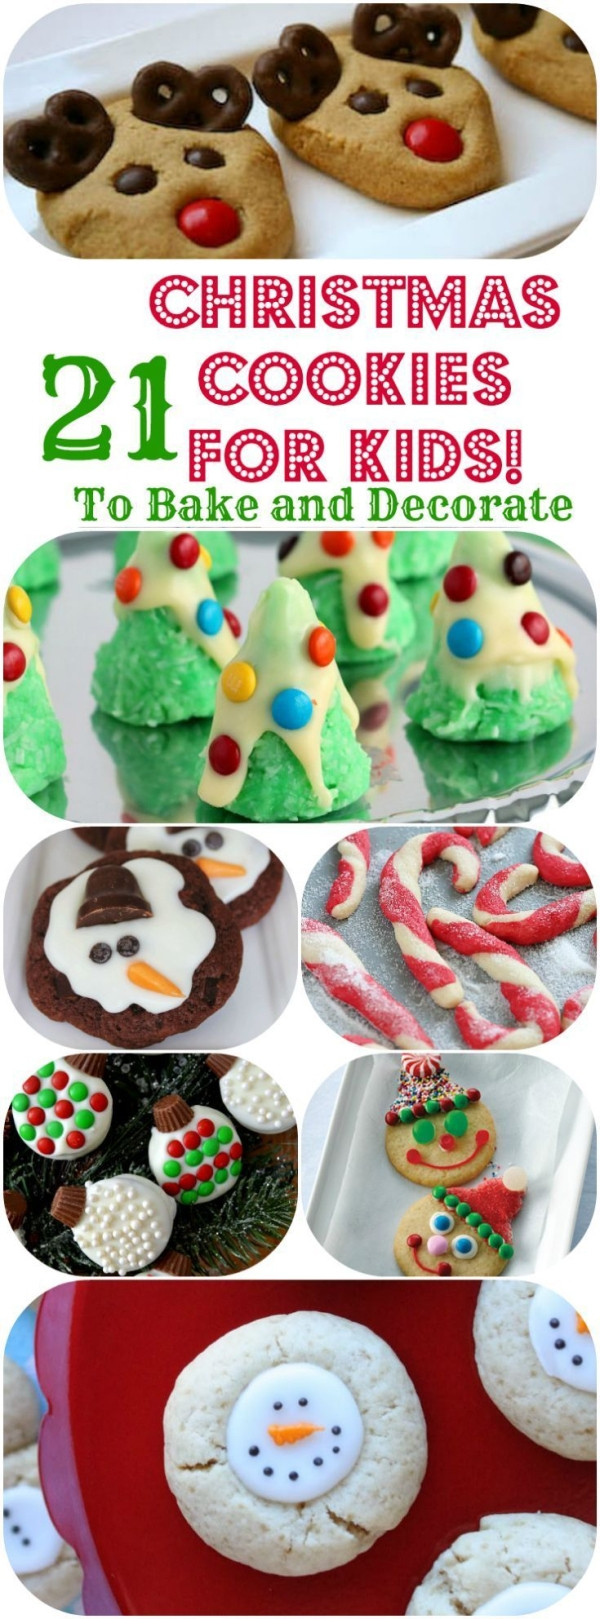 Easy Bake Christmas Cookies  Easy Christmas Cookie recipes for Kids to Bake or Decorate